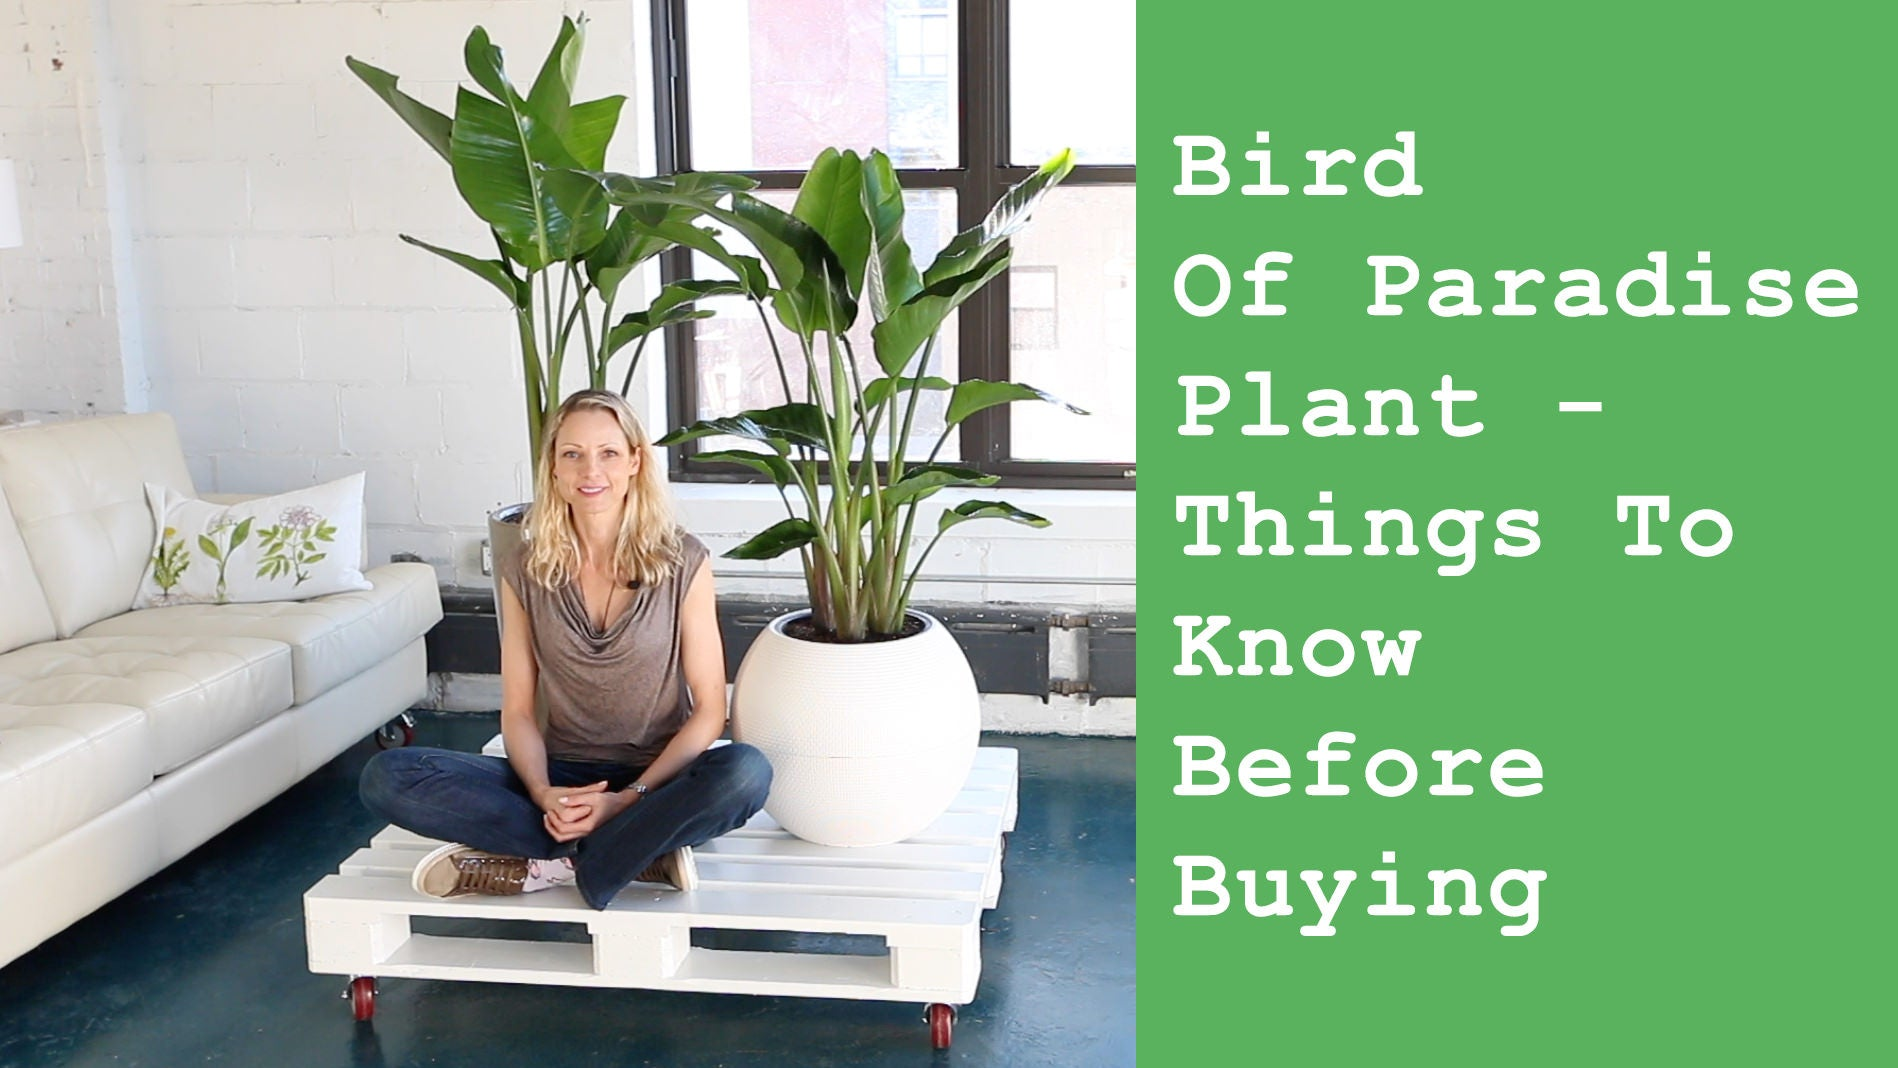 Bird of Paradise plant video